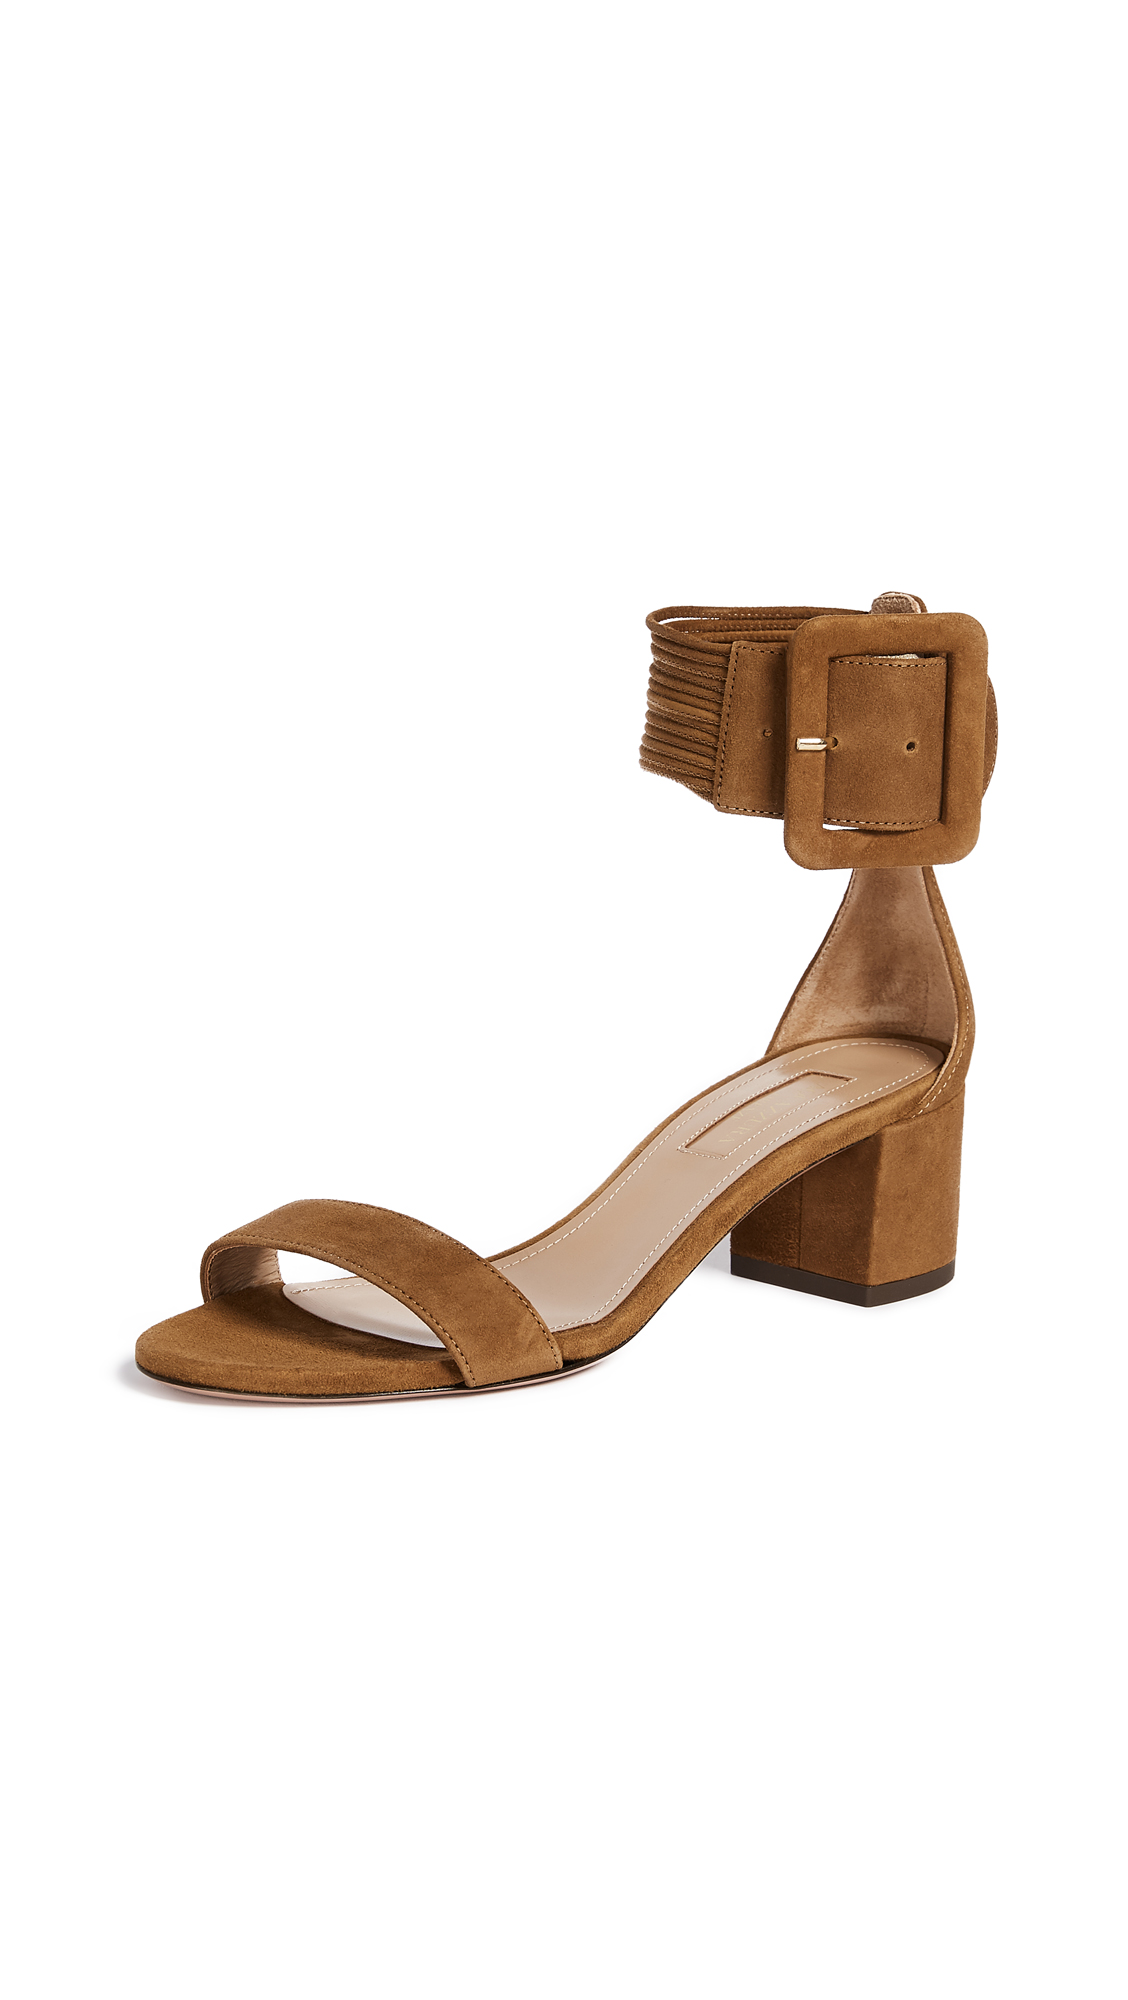 Aquazzura Casablanca 50 Sandals - Cognac